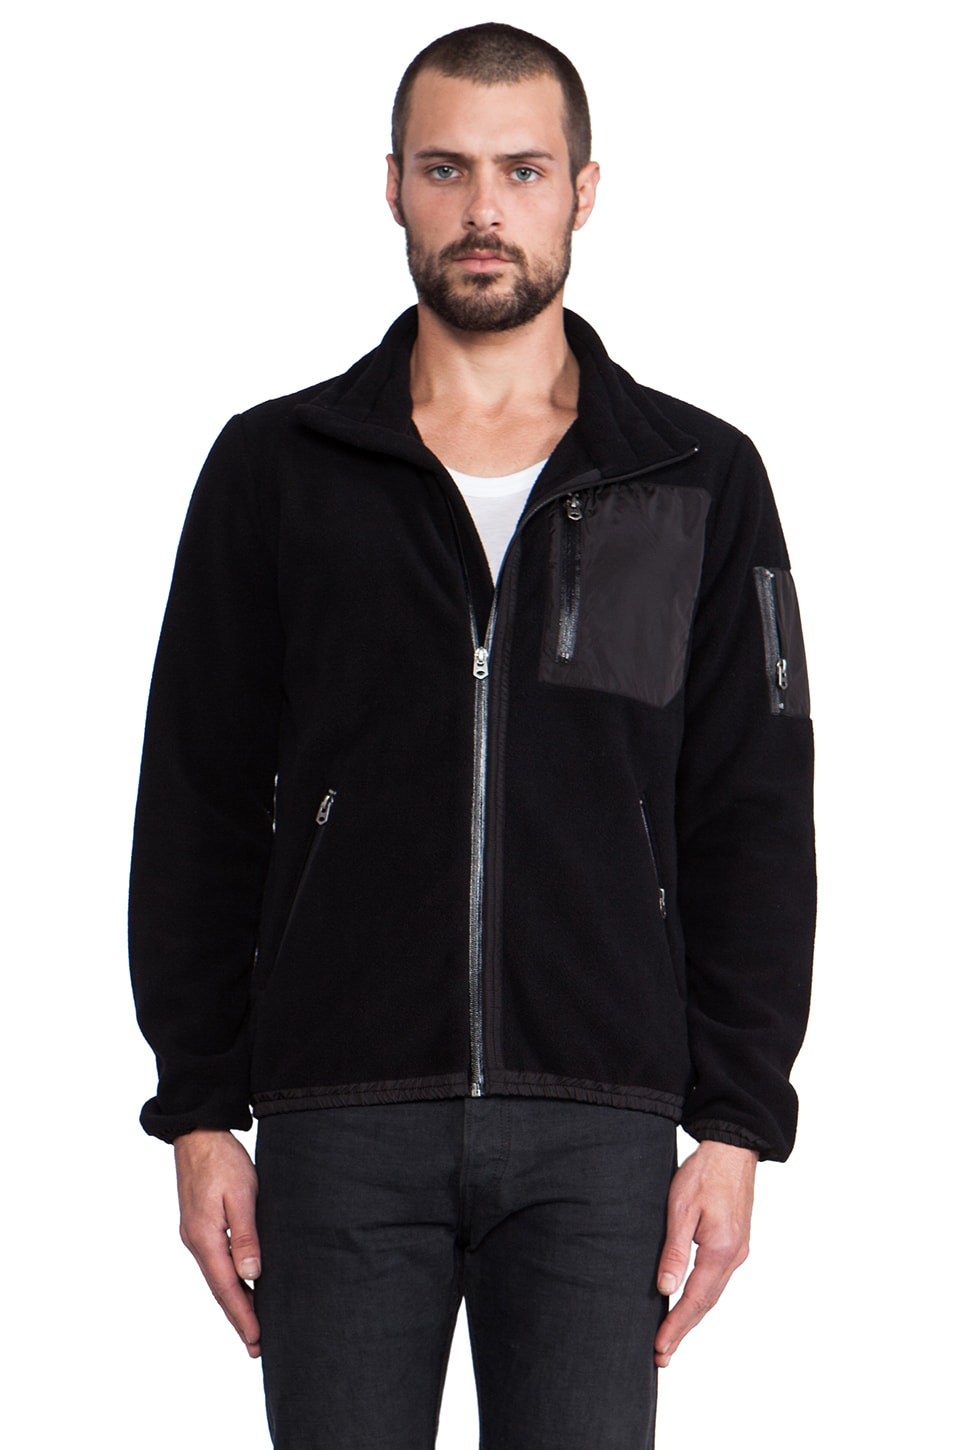 Shades of Grey by Micah Cohen Polar Fleece Jacket in Black